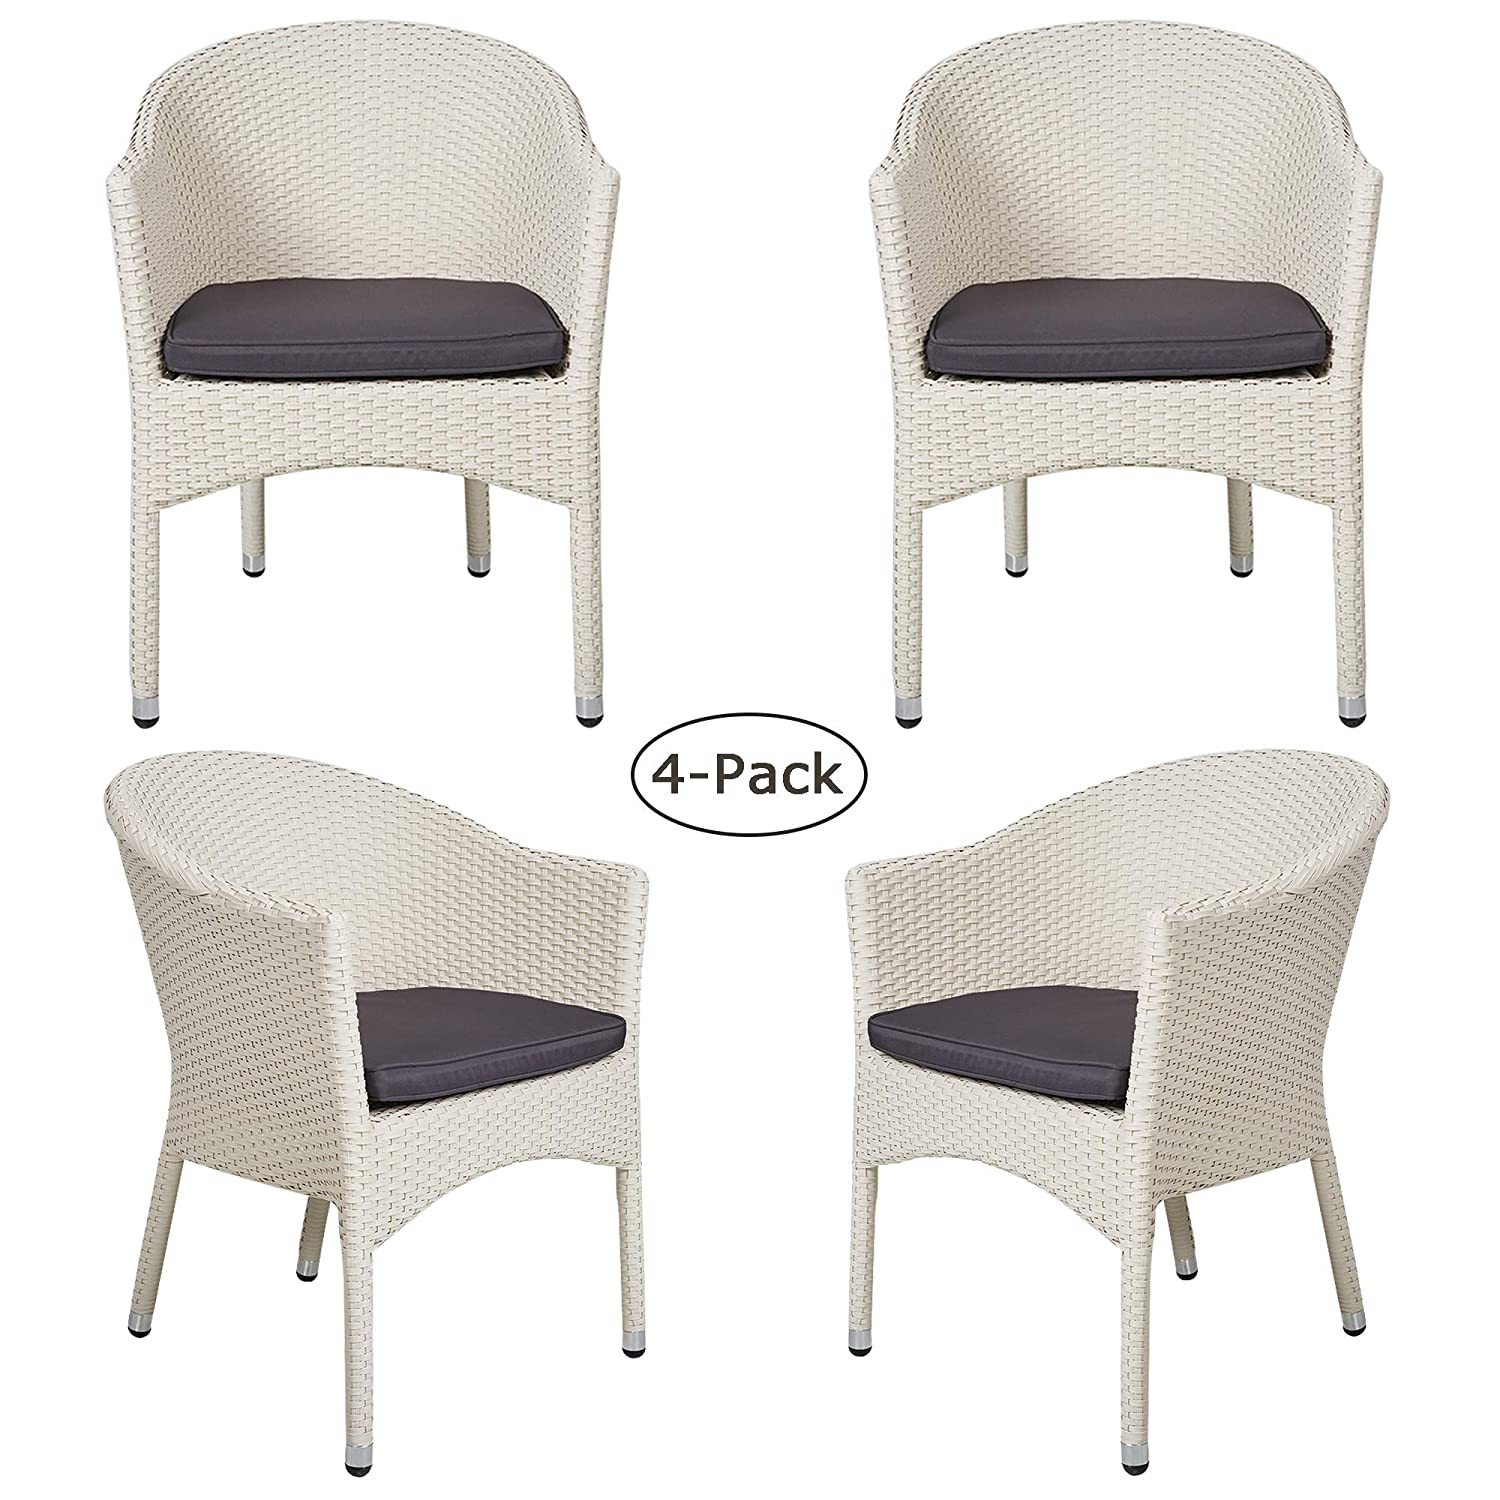 Amazon com luckyermore 4 pack patio dining chair modern rattan wicker chair with cushion home furniture all weather outdoor garden balcony lawn